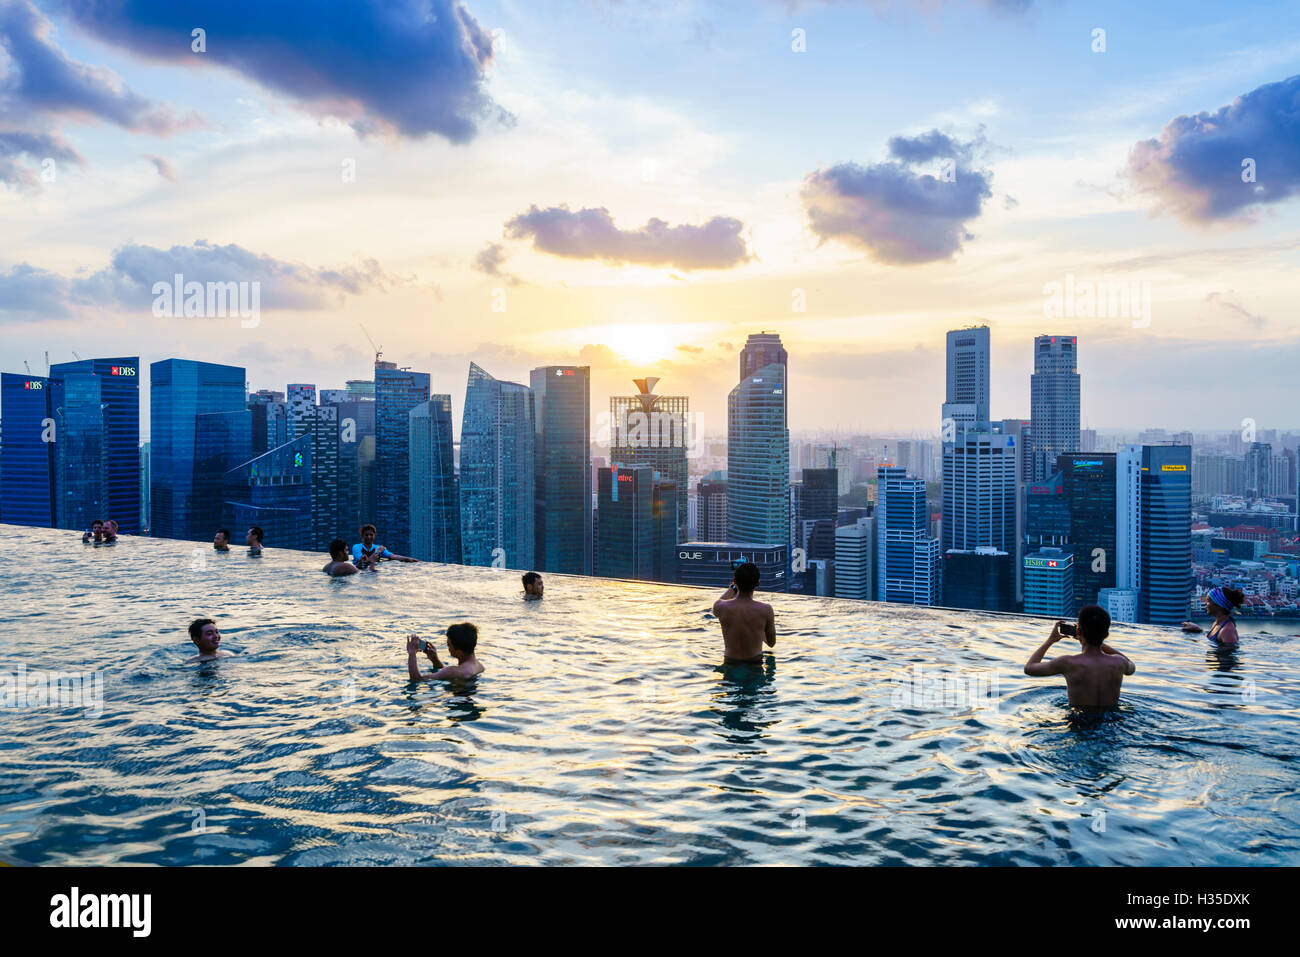 Infinity Pool On The Roof Of Marina Bay Sands Hotel With Spectacular Views Over Singapore Skyline At Sunset